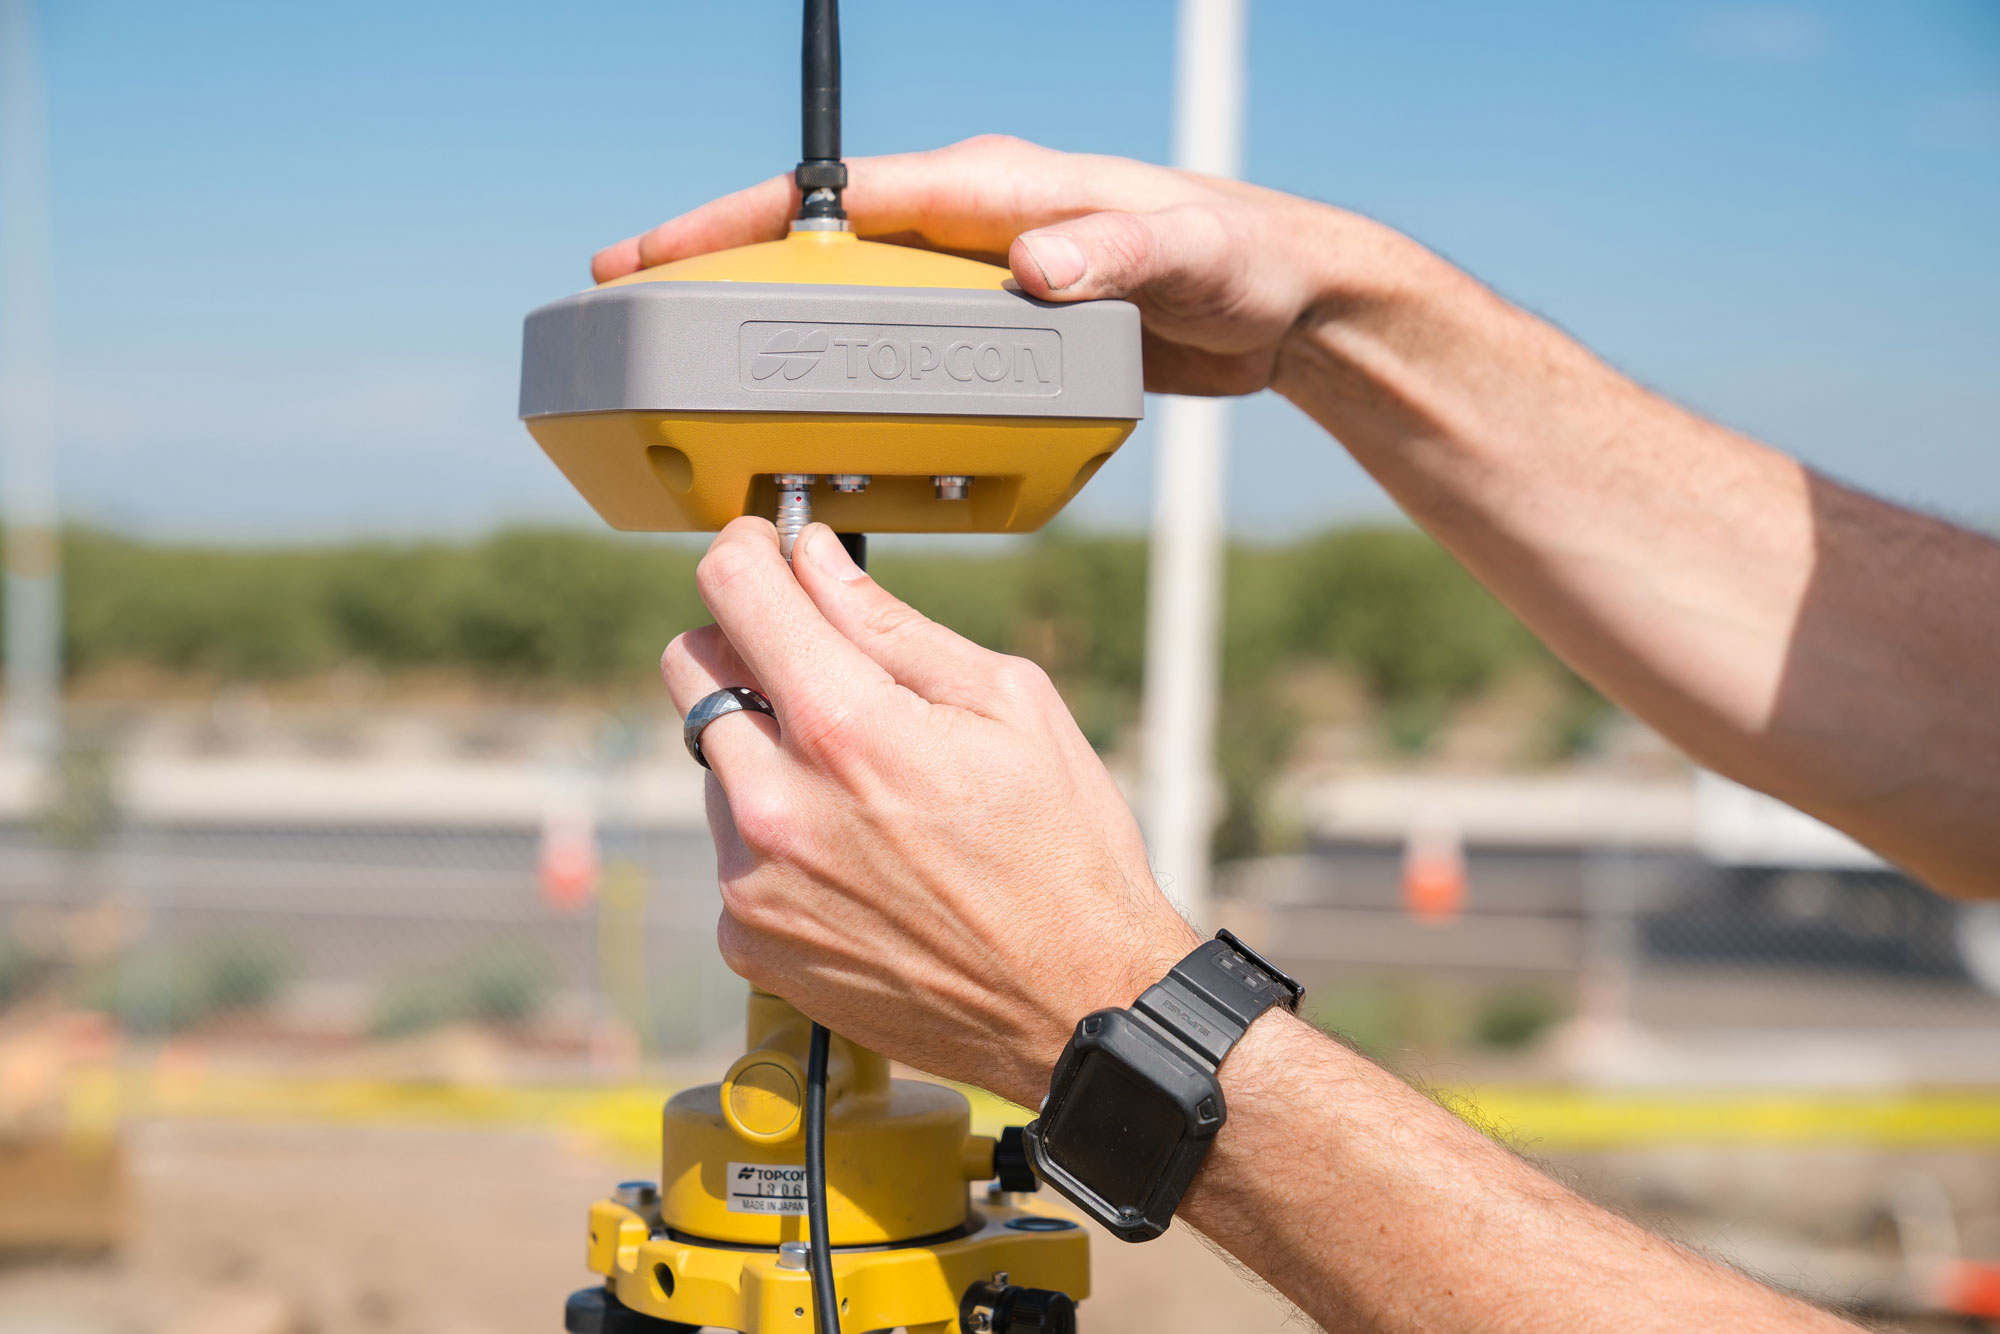 MirRTK - Precise GNSS systems for sale or hire | Position Partners